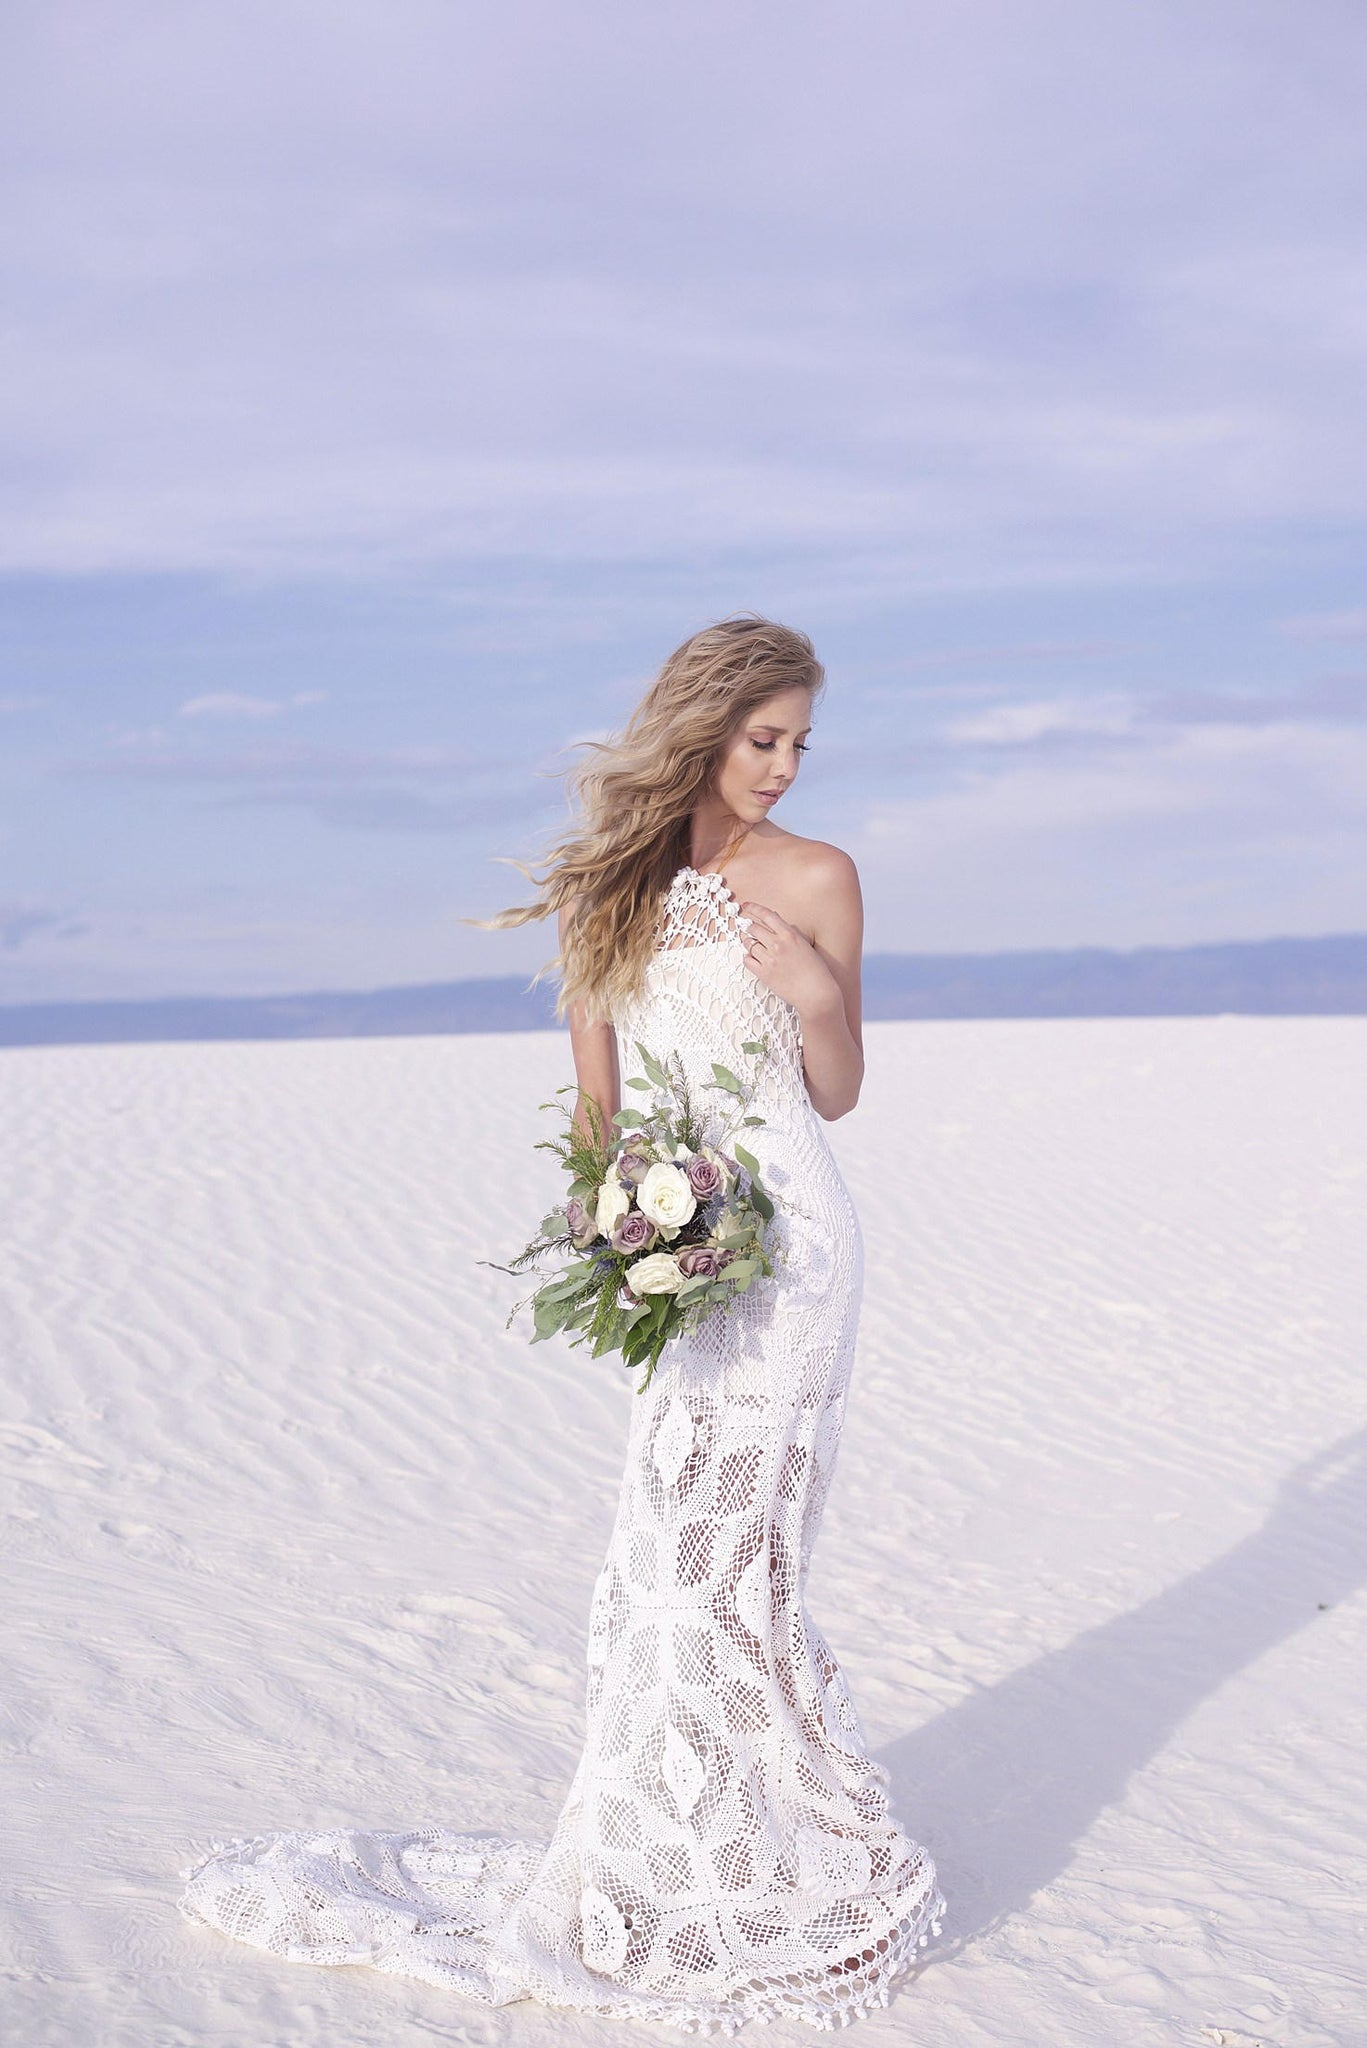 Beautiful blonde bride wearing long white crochet wedding gown with train.